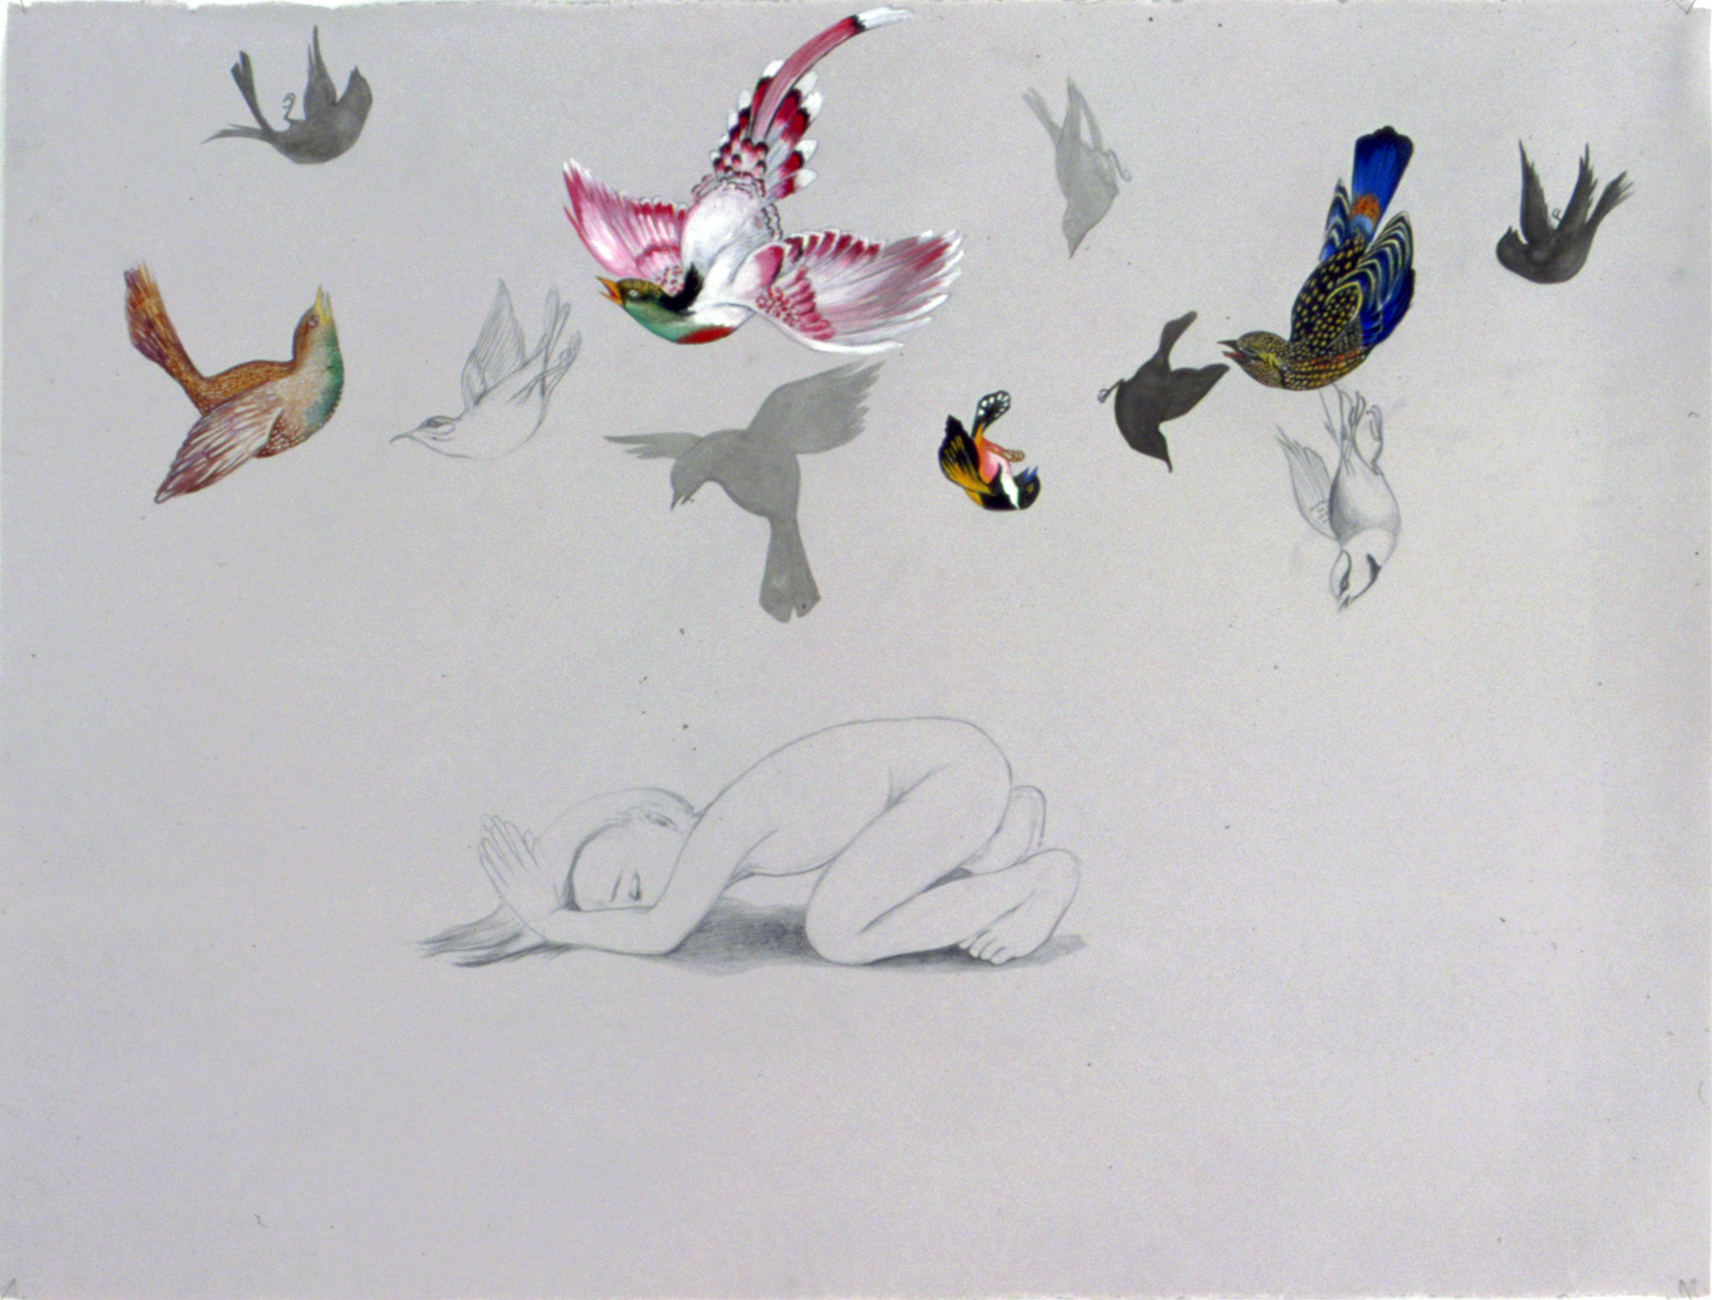 Pray For The Death Of Birds , 2004 Graphite, ink, gouache on gray paper 38 X 50 inches Private collection